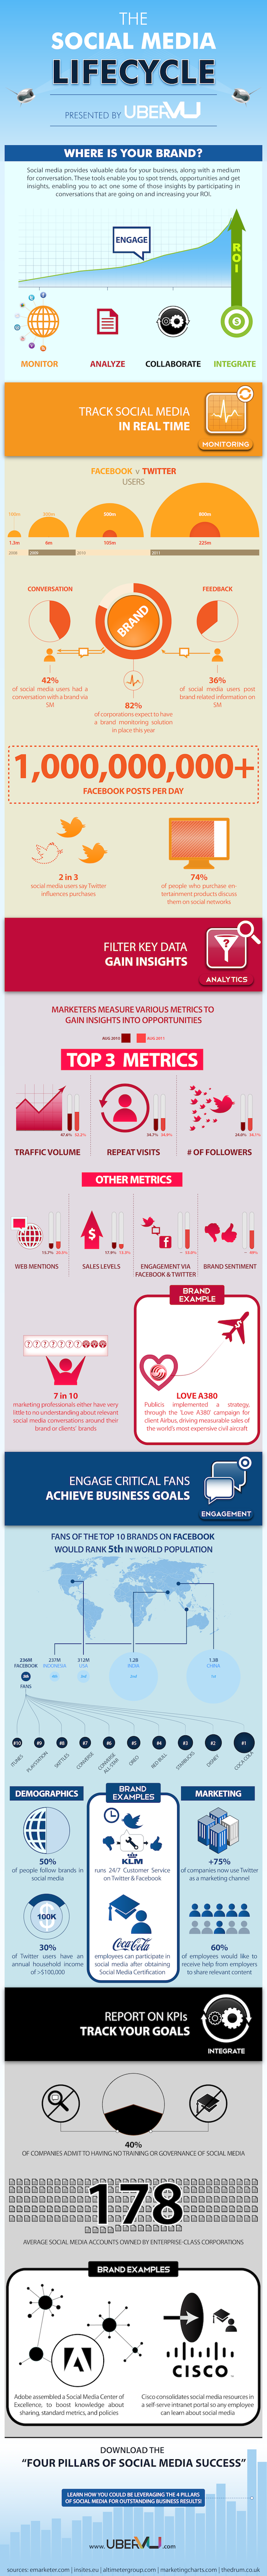 The-Social-Media-Lifecycle-infographic